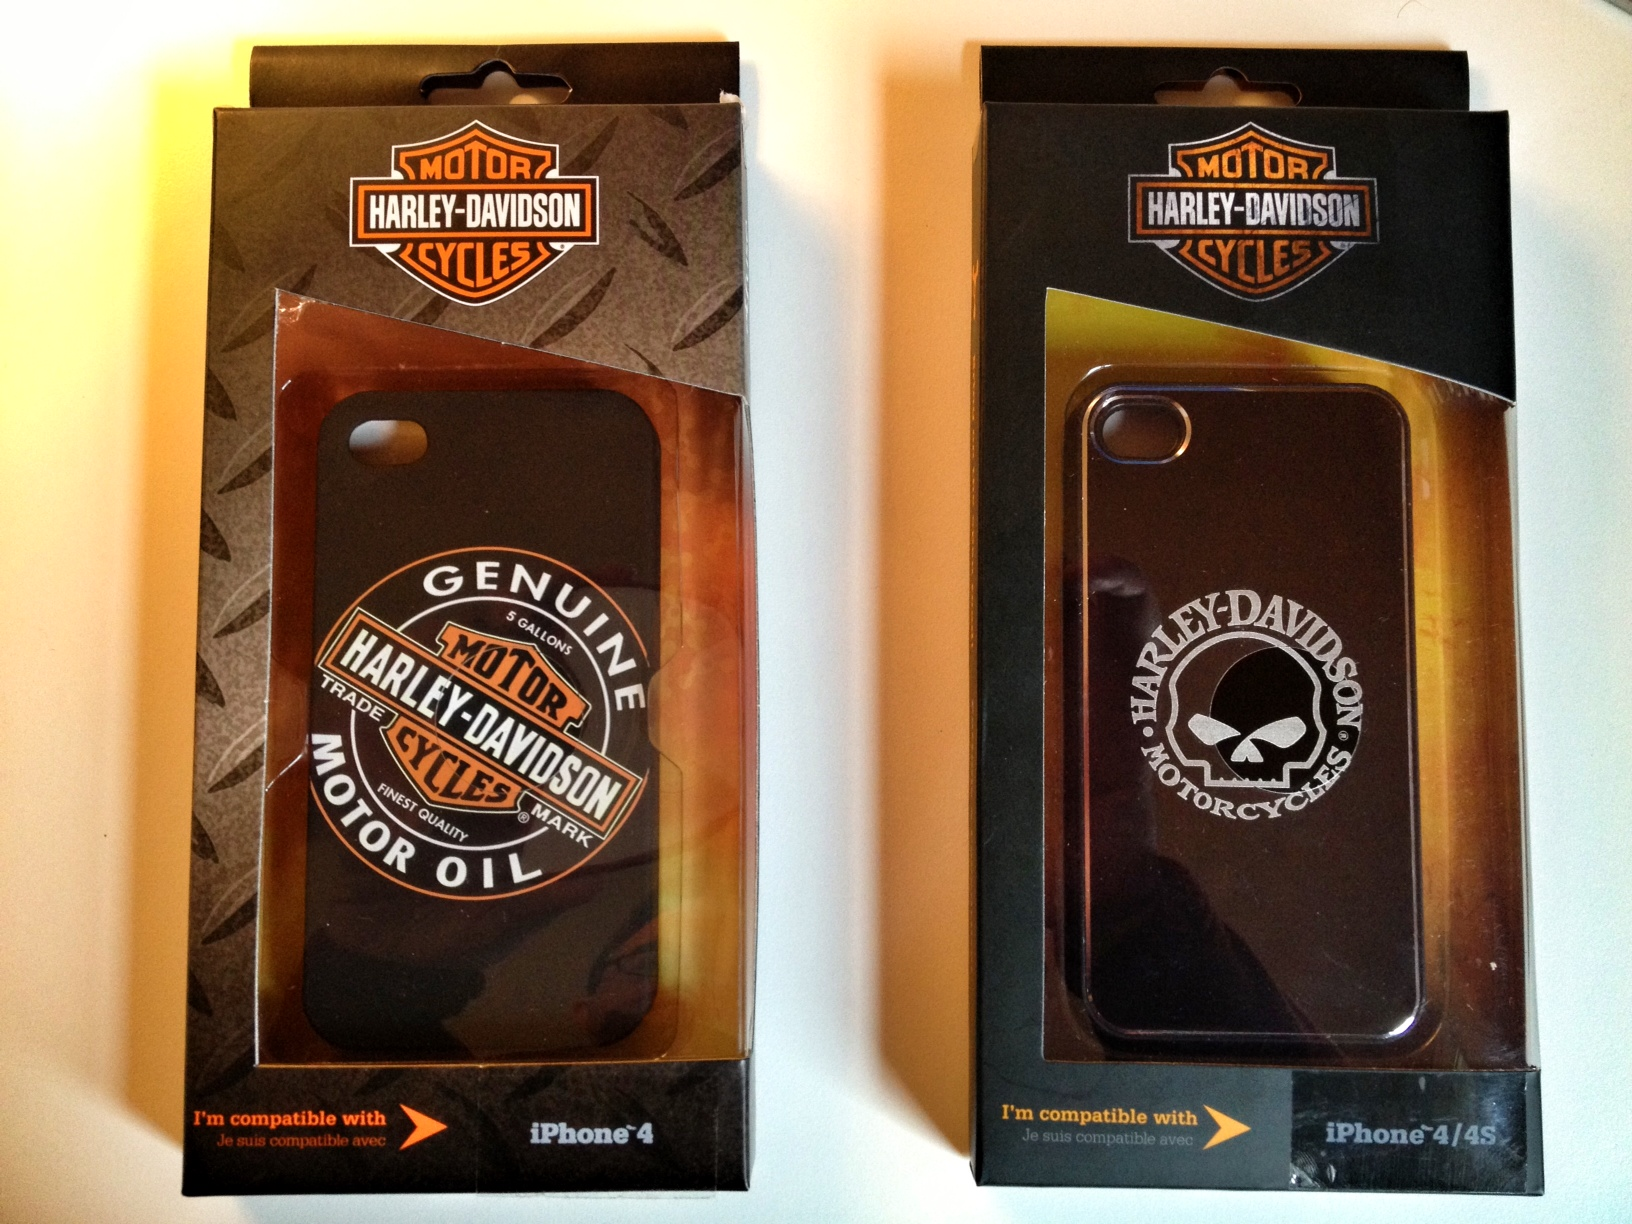 mis harley davidson case High quality harley davidson inspired cases & skins for samsung galaxy for s9, s9+, s8, s8+, s7, s7 edge, s6 edge, s6 edge+, s6, s5, s4 or s3 by independent artists and designers from around the world.